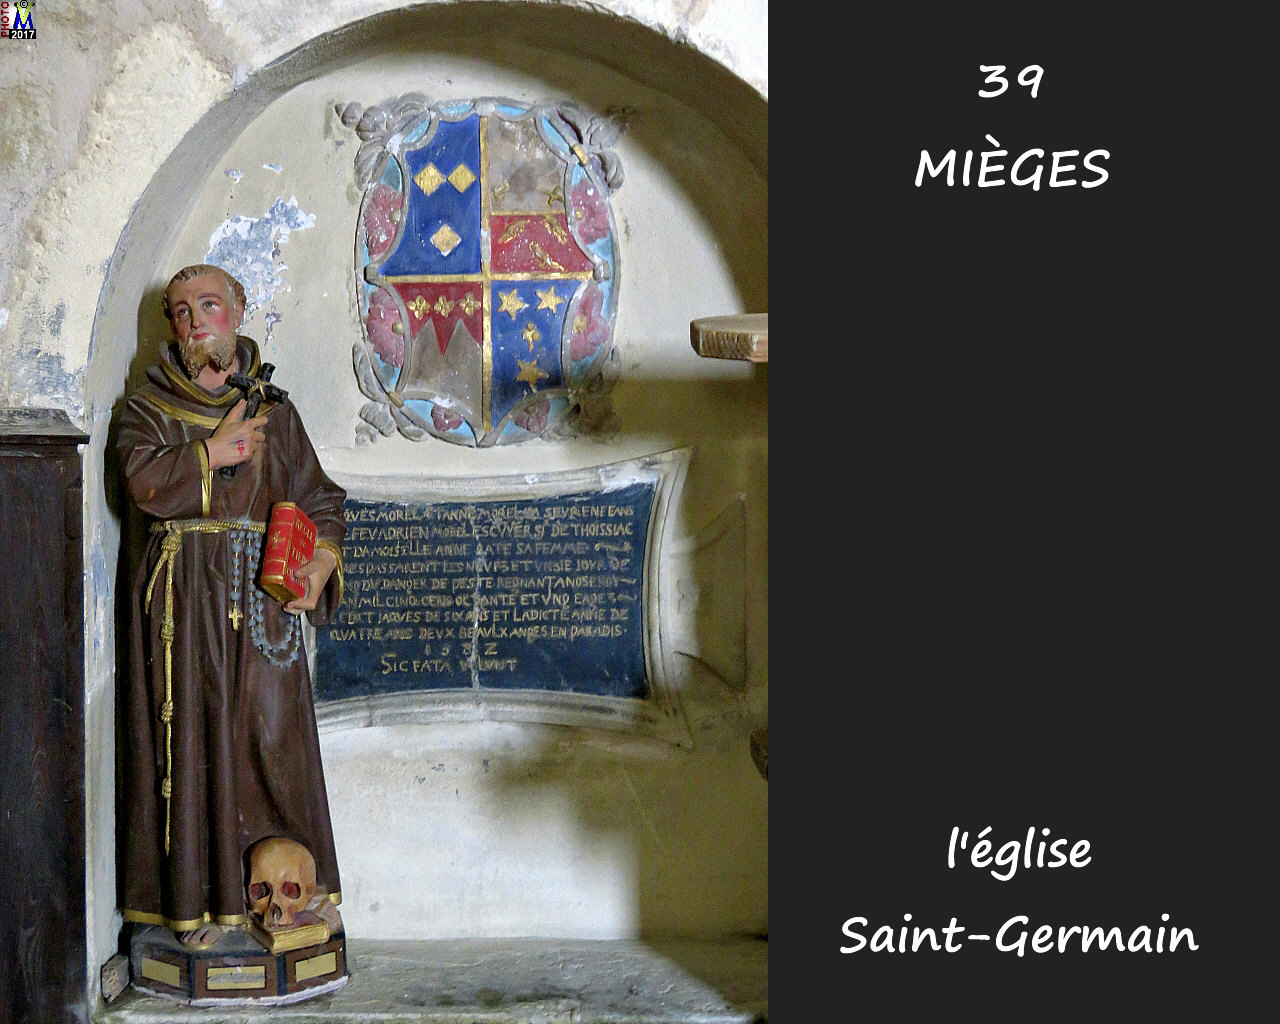 39MIEGES_eglise_272.jpg